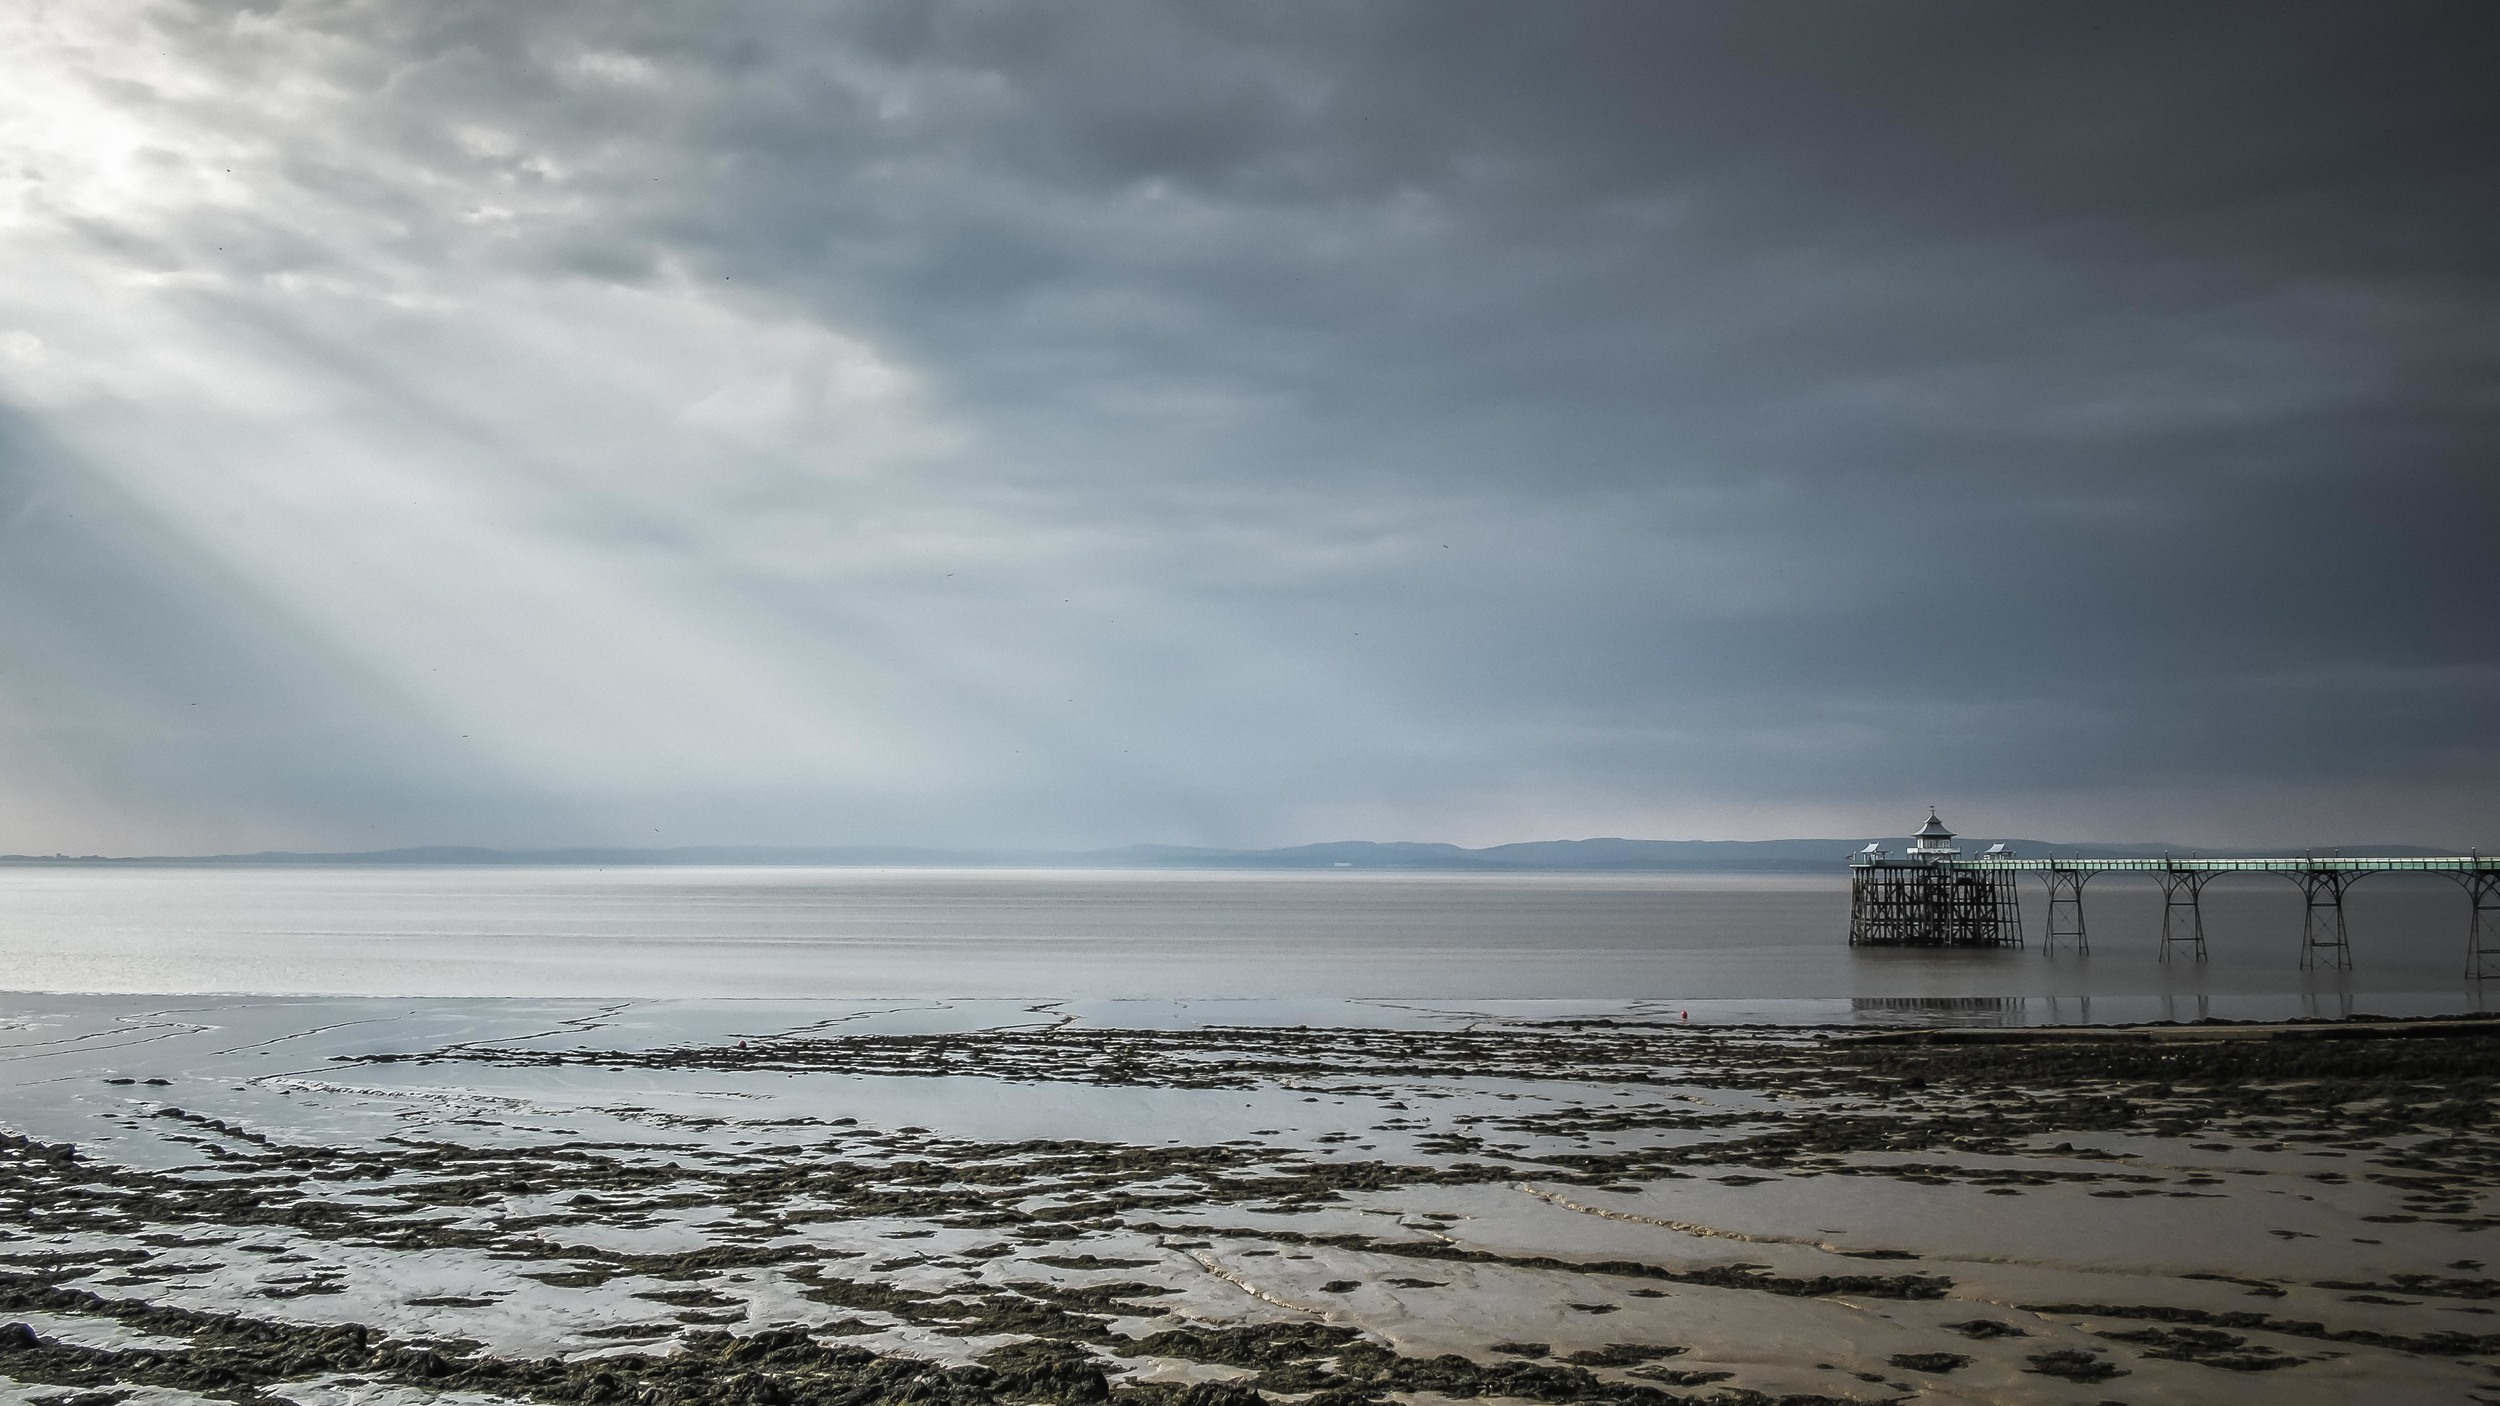 """Turquoise Light"" - Clevedon, England.  Fujifilm X-Pro1 + 18mm f/2 @ f/11. 1/200."